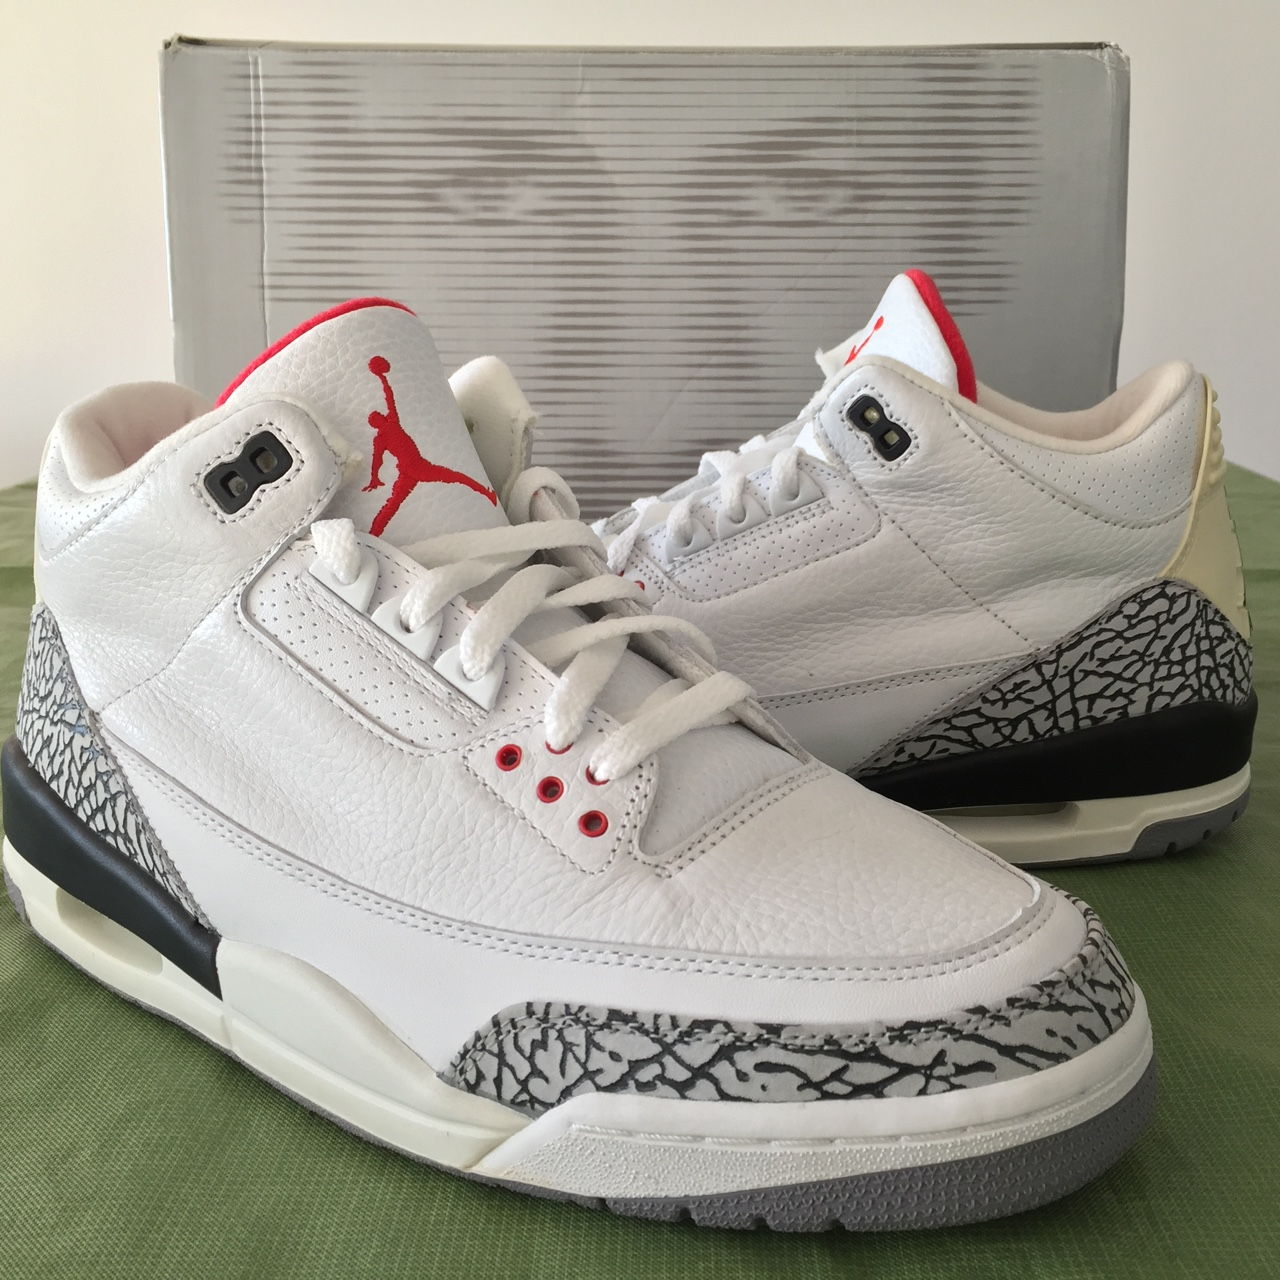 newest 5c127 db180 2003 Nike Air Jordan III 3 White Cement Fire Red - 10.5 - Depop